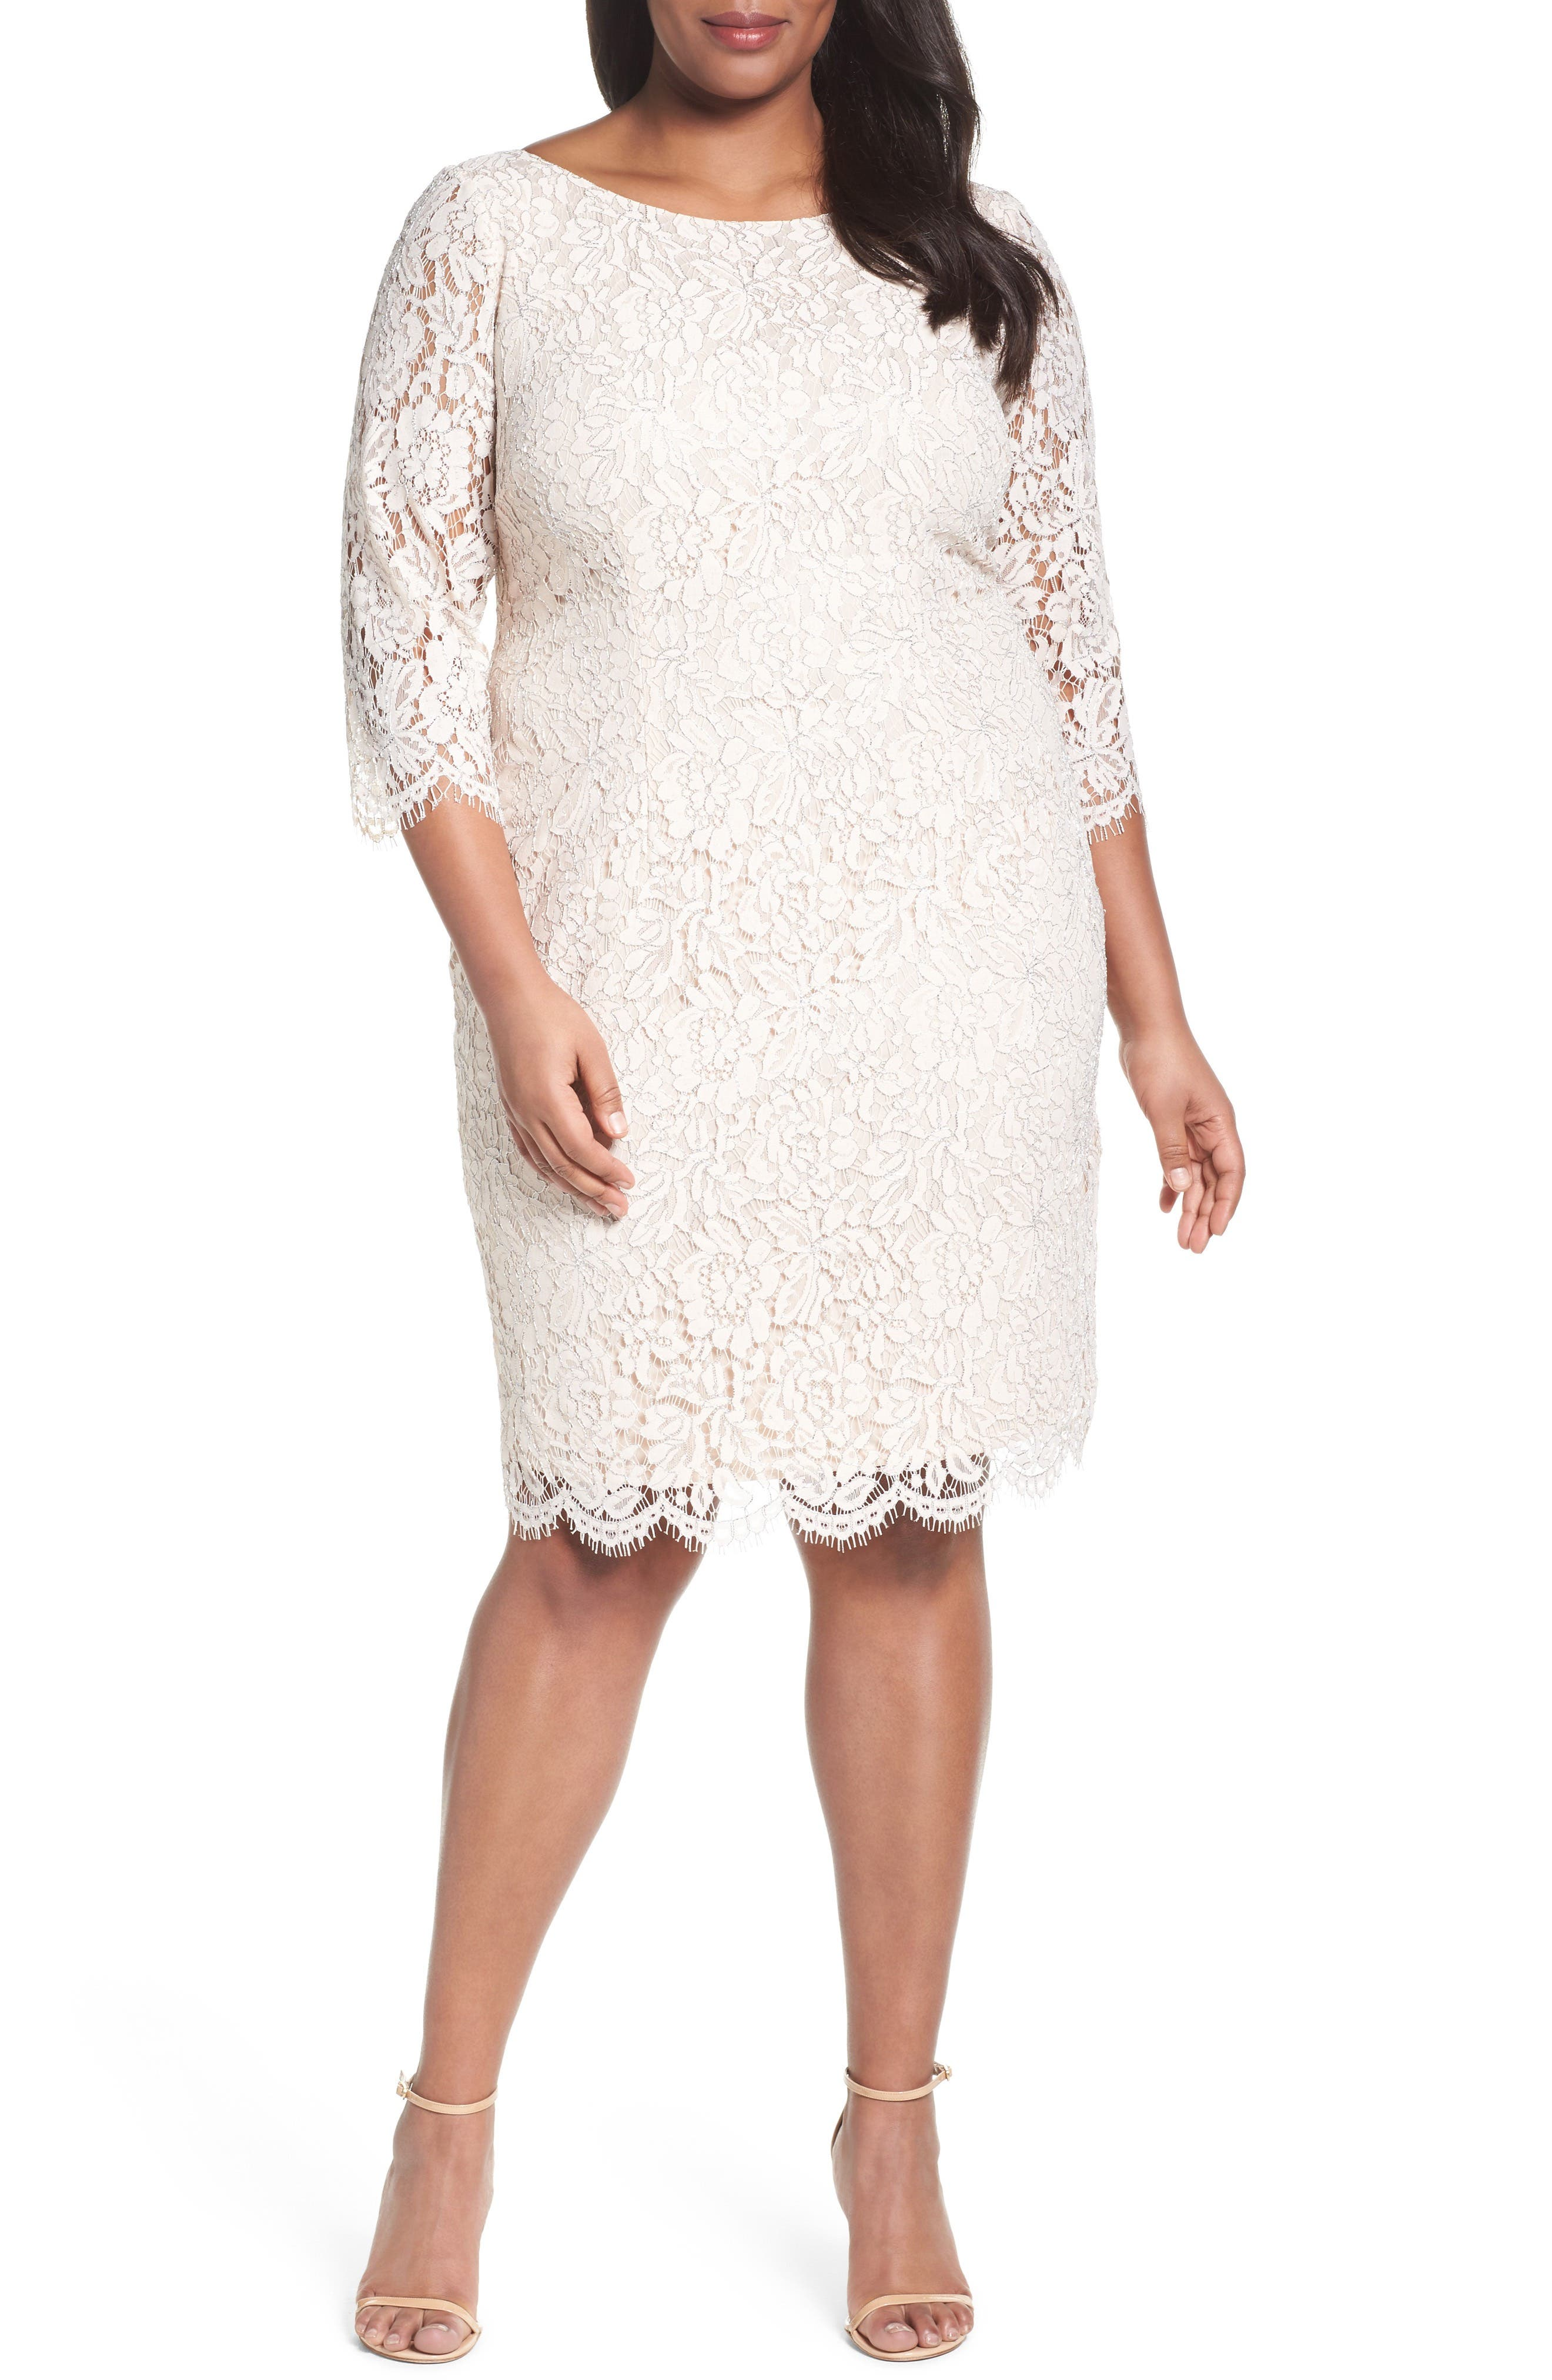 Adrianna Papell Metallic Lace Sheath Dress (Plus Size)